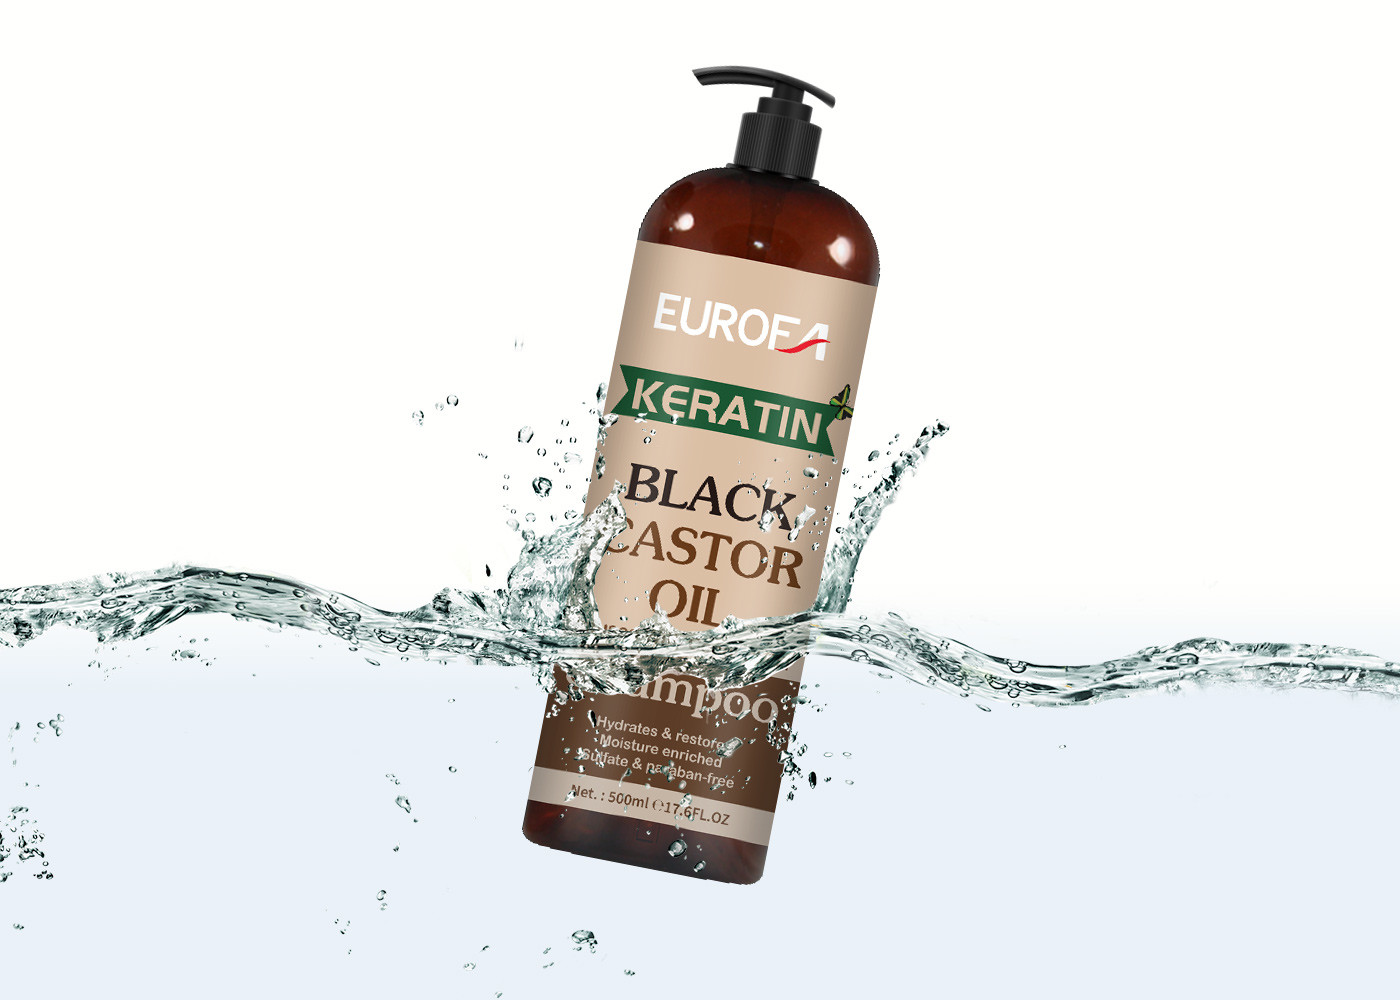 Black Castor Oil Shampoo For Fine And Dry Hair Natural Fragrance Shampoo